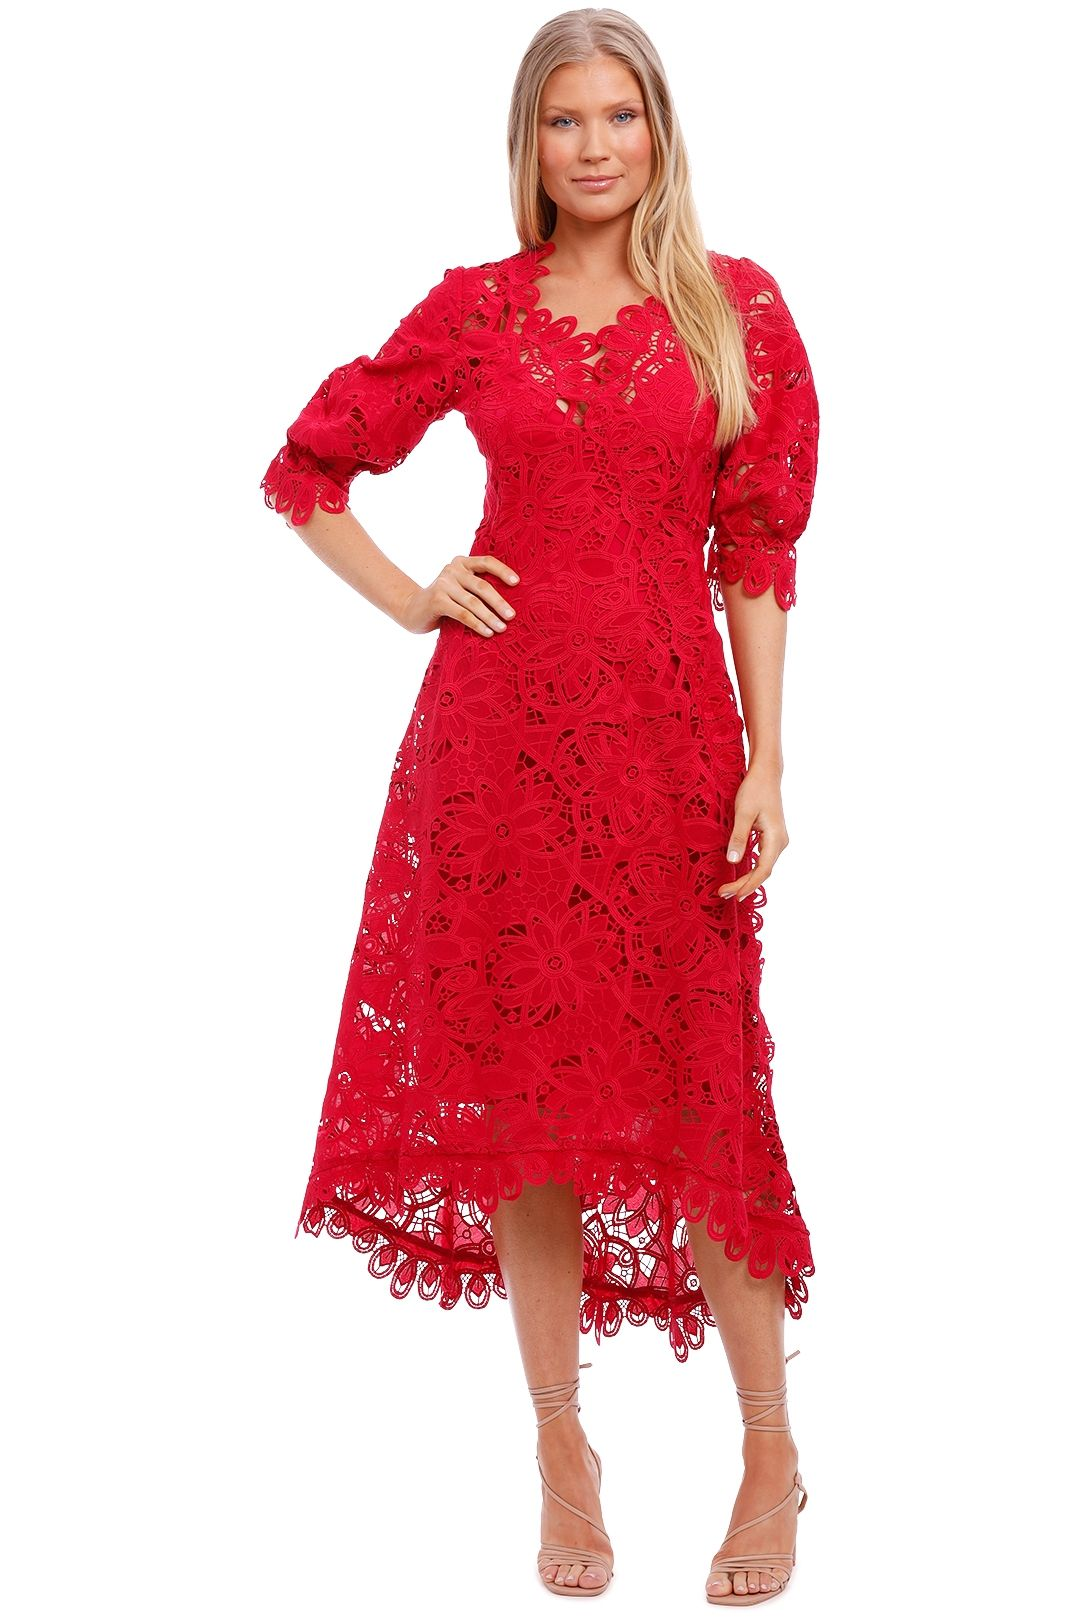 Moss and Spy Macgraw Short Sleeve Dress lace